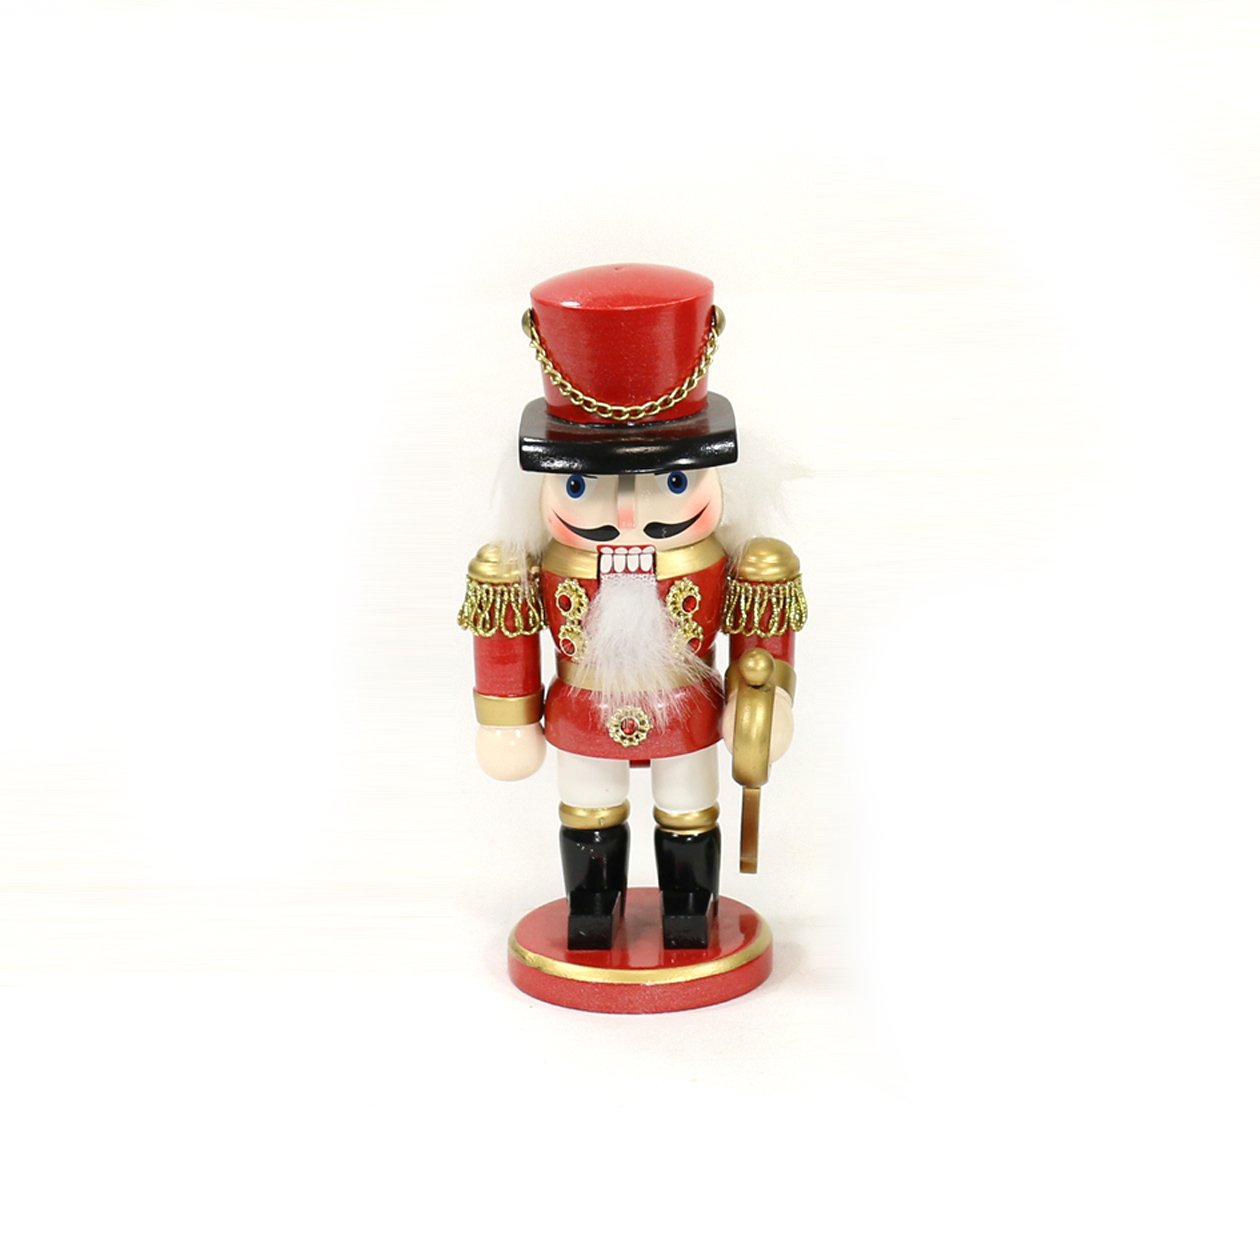 Dekohelden24 Beautiful Nutcracker Soldier, colour Red, size approx. 15 cm